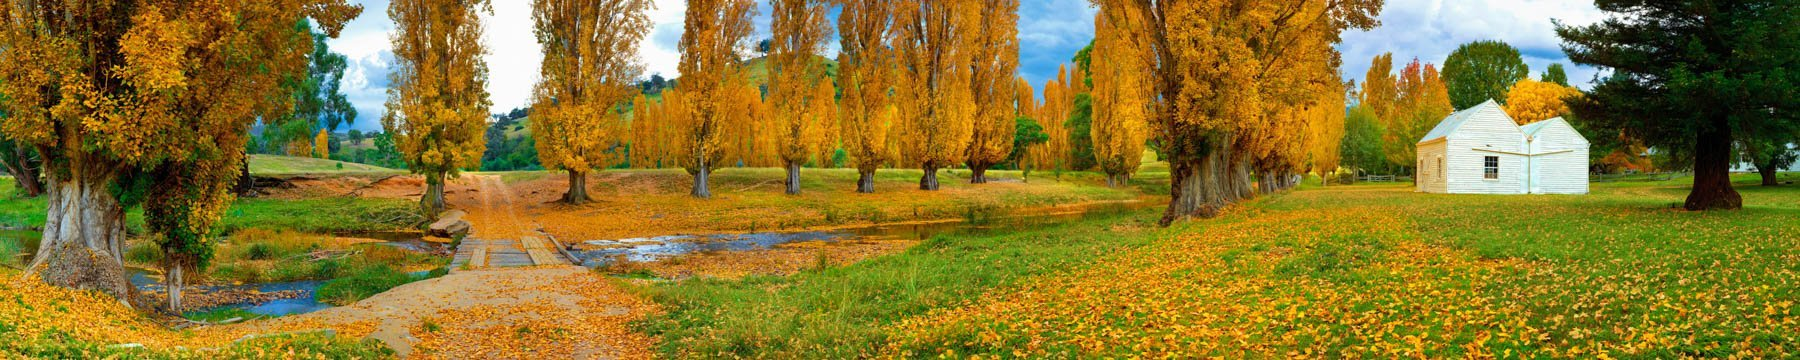 Beautiful autumn colours on display at Bindi Station, Omeo Valley, Victoria, Australia.